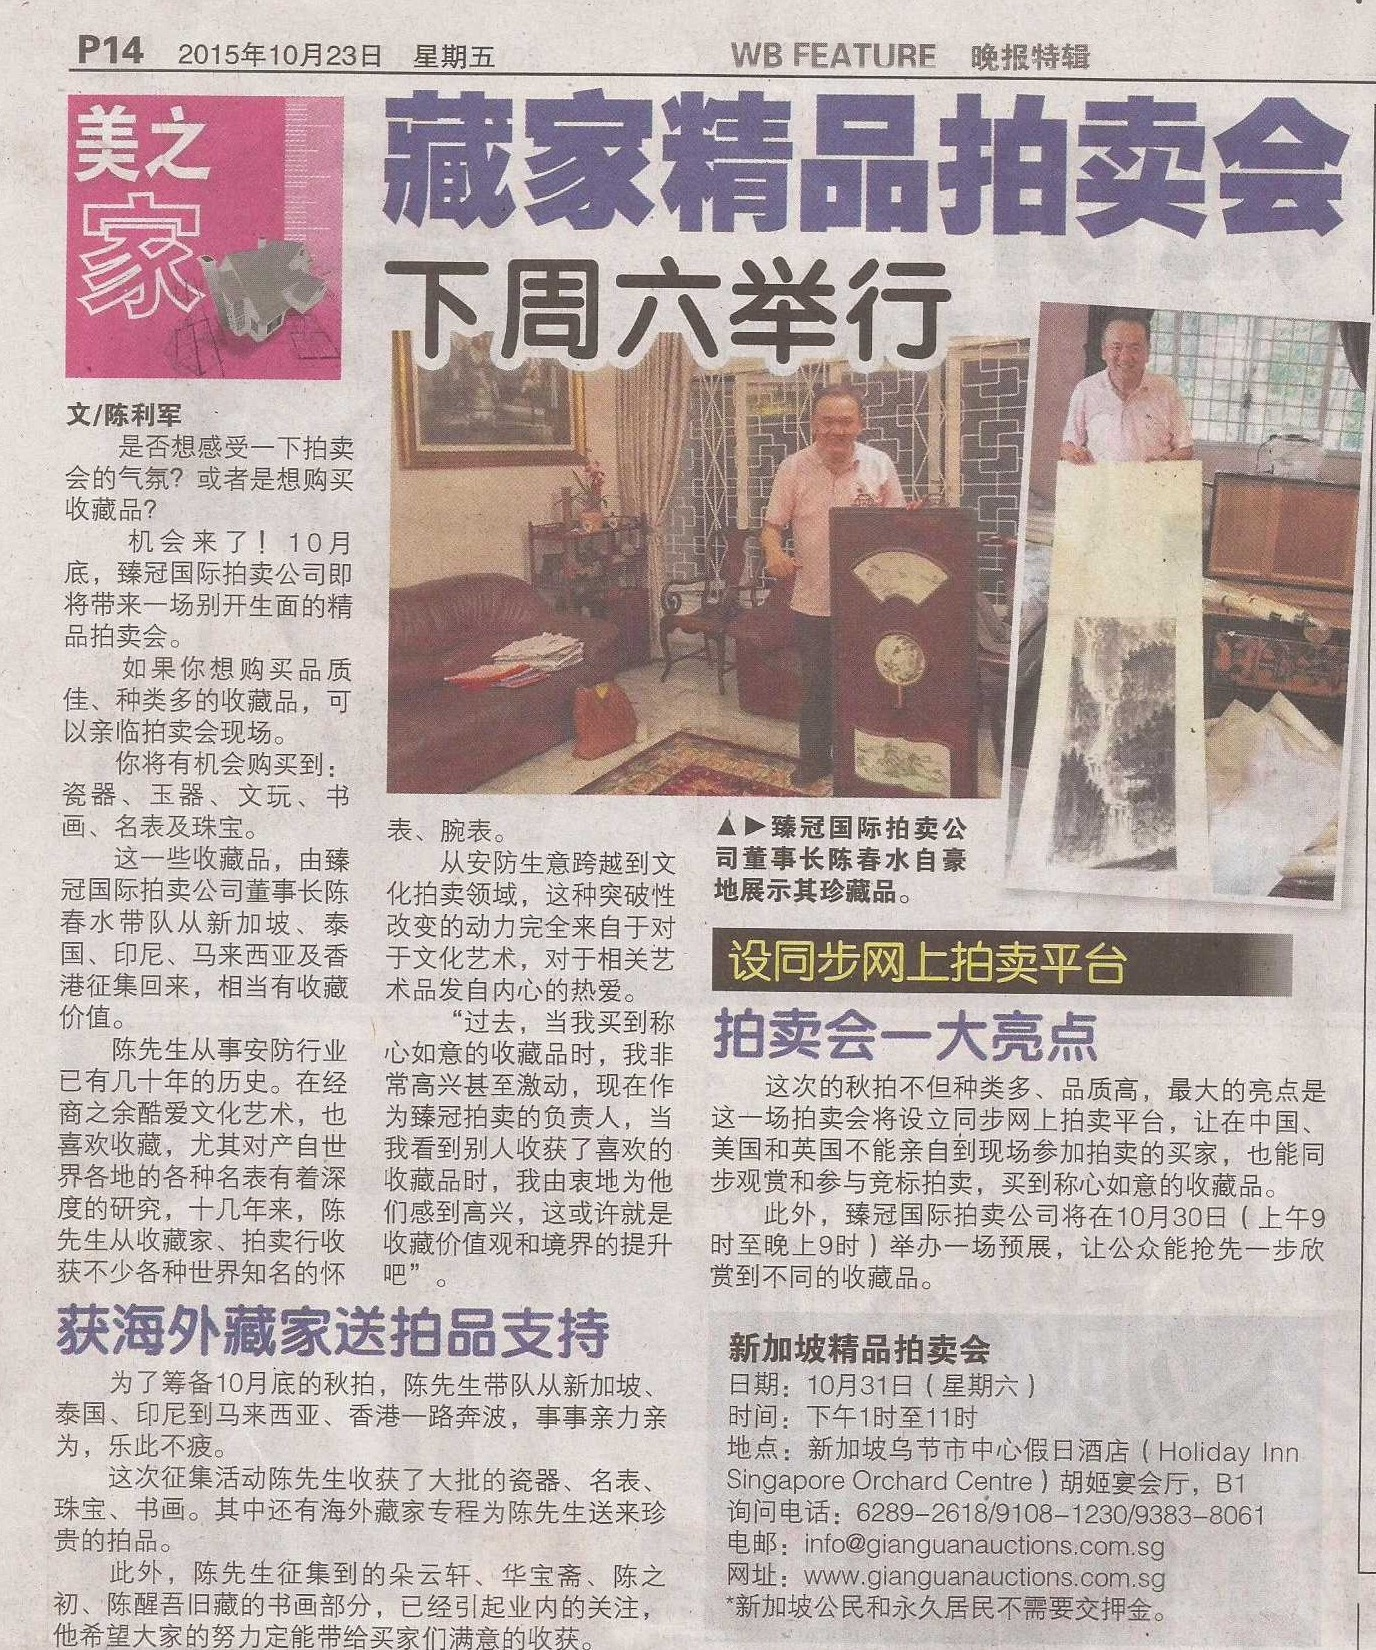 Chinese evening paper Wanbao